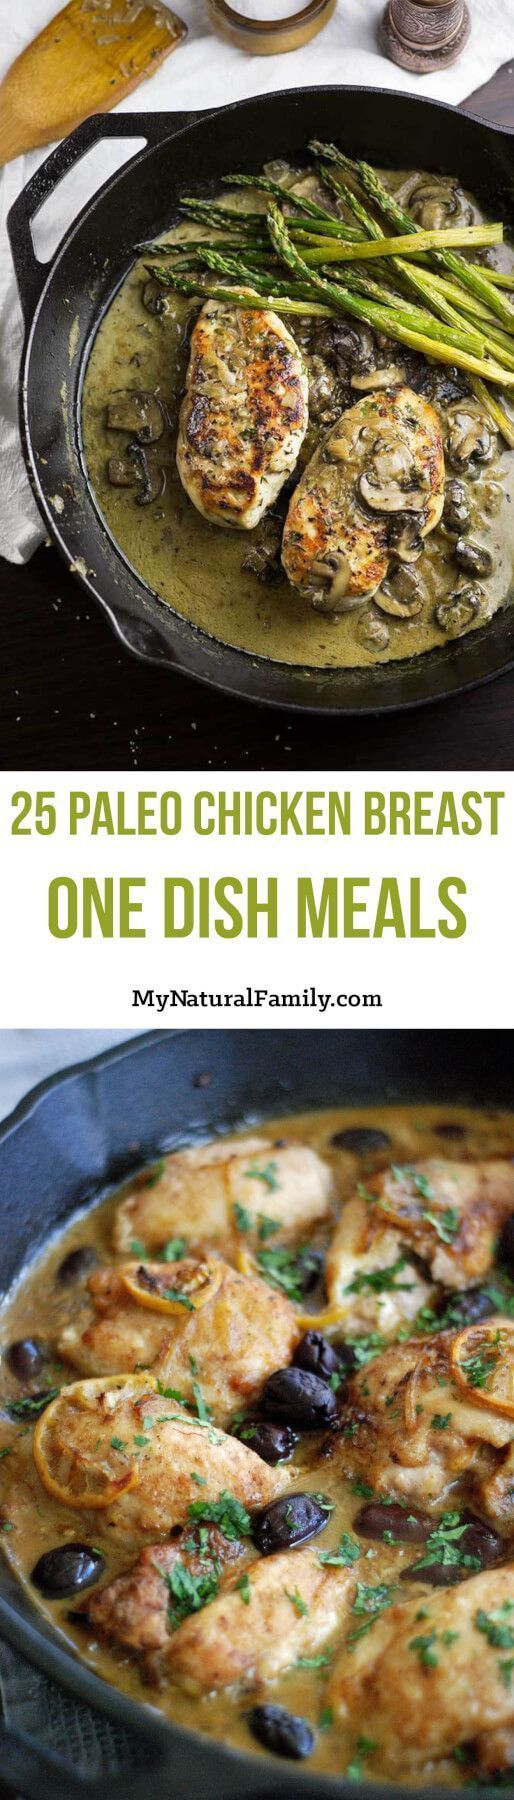 Paleo Chicken Breast One Dish Meal Recipes